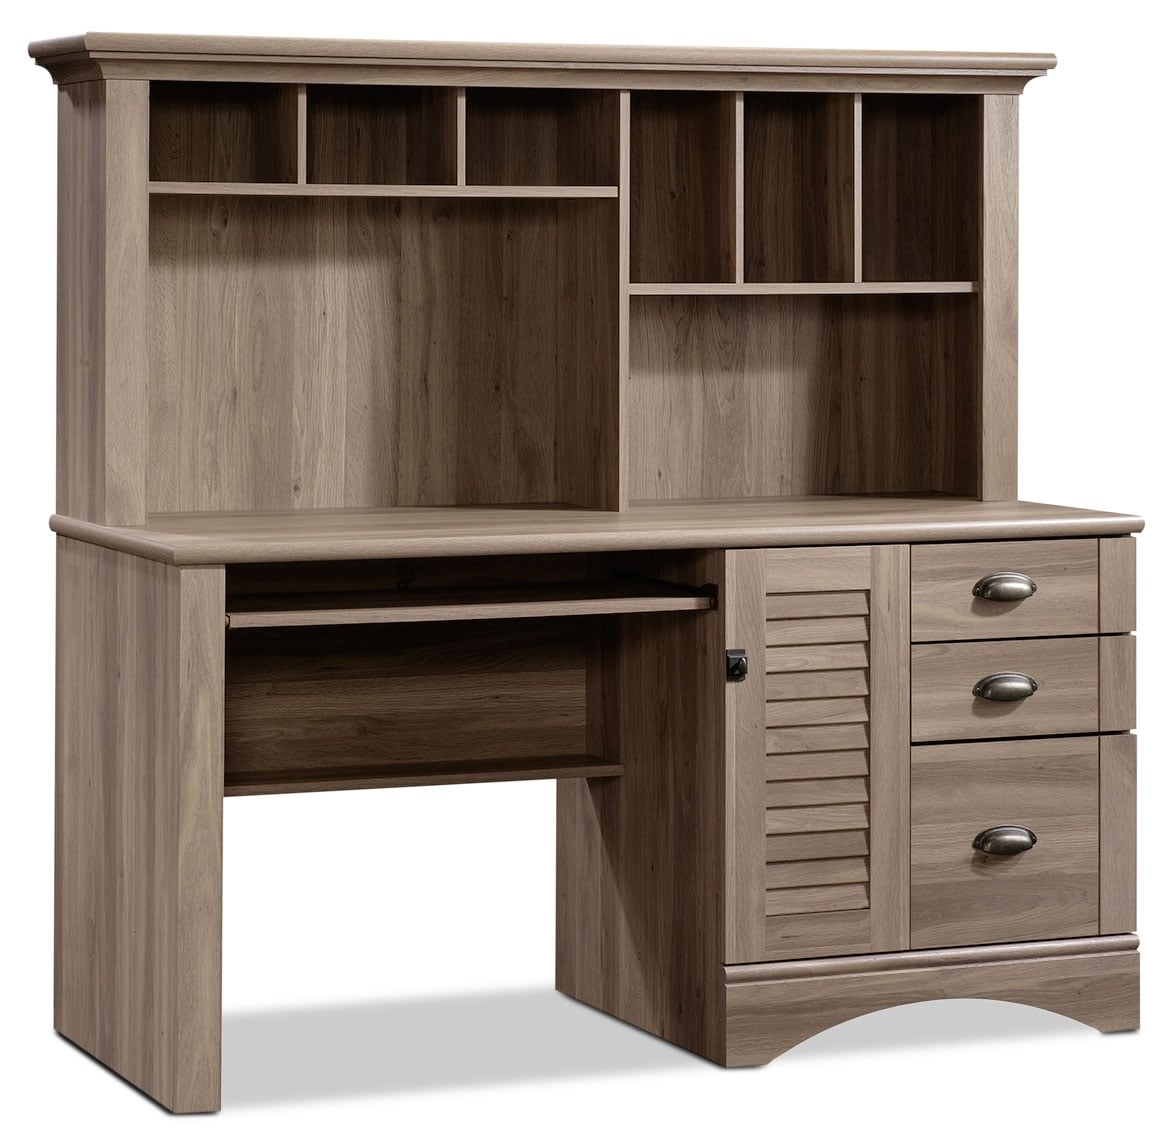 Harbor View Desk with Hutch – Salt Oak